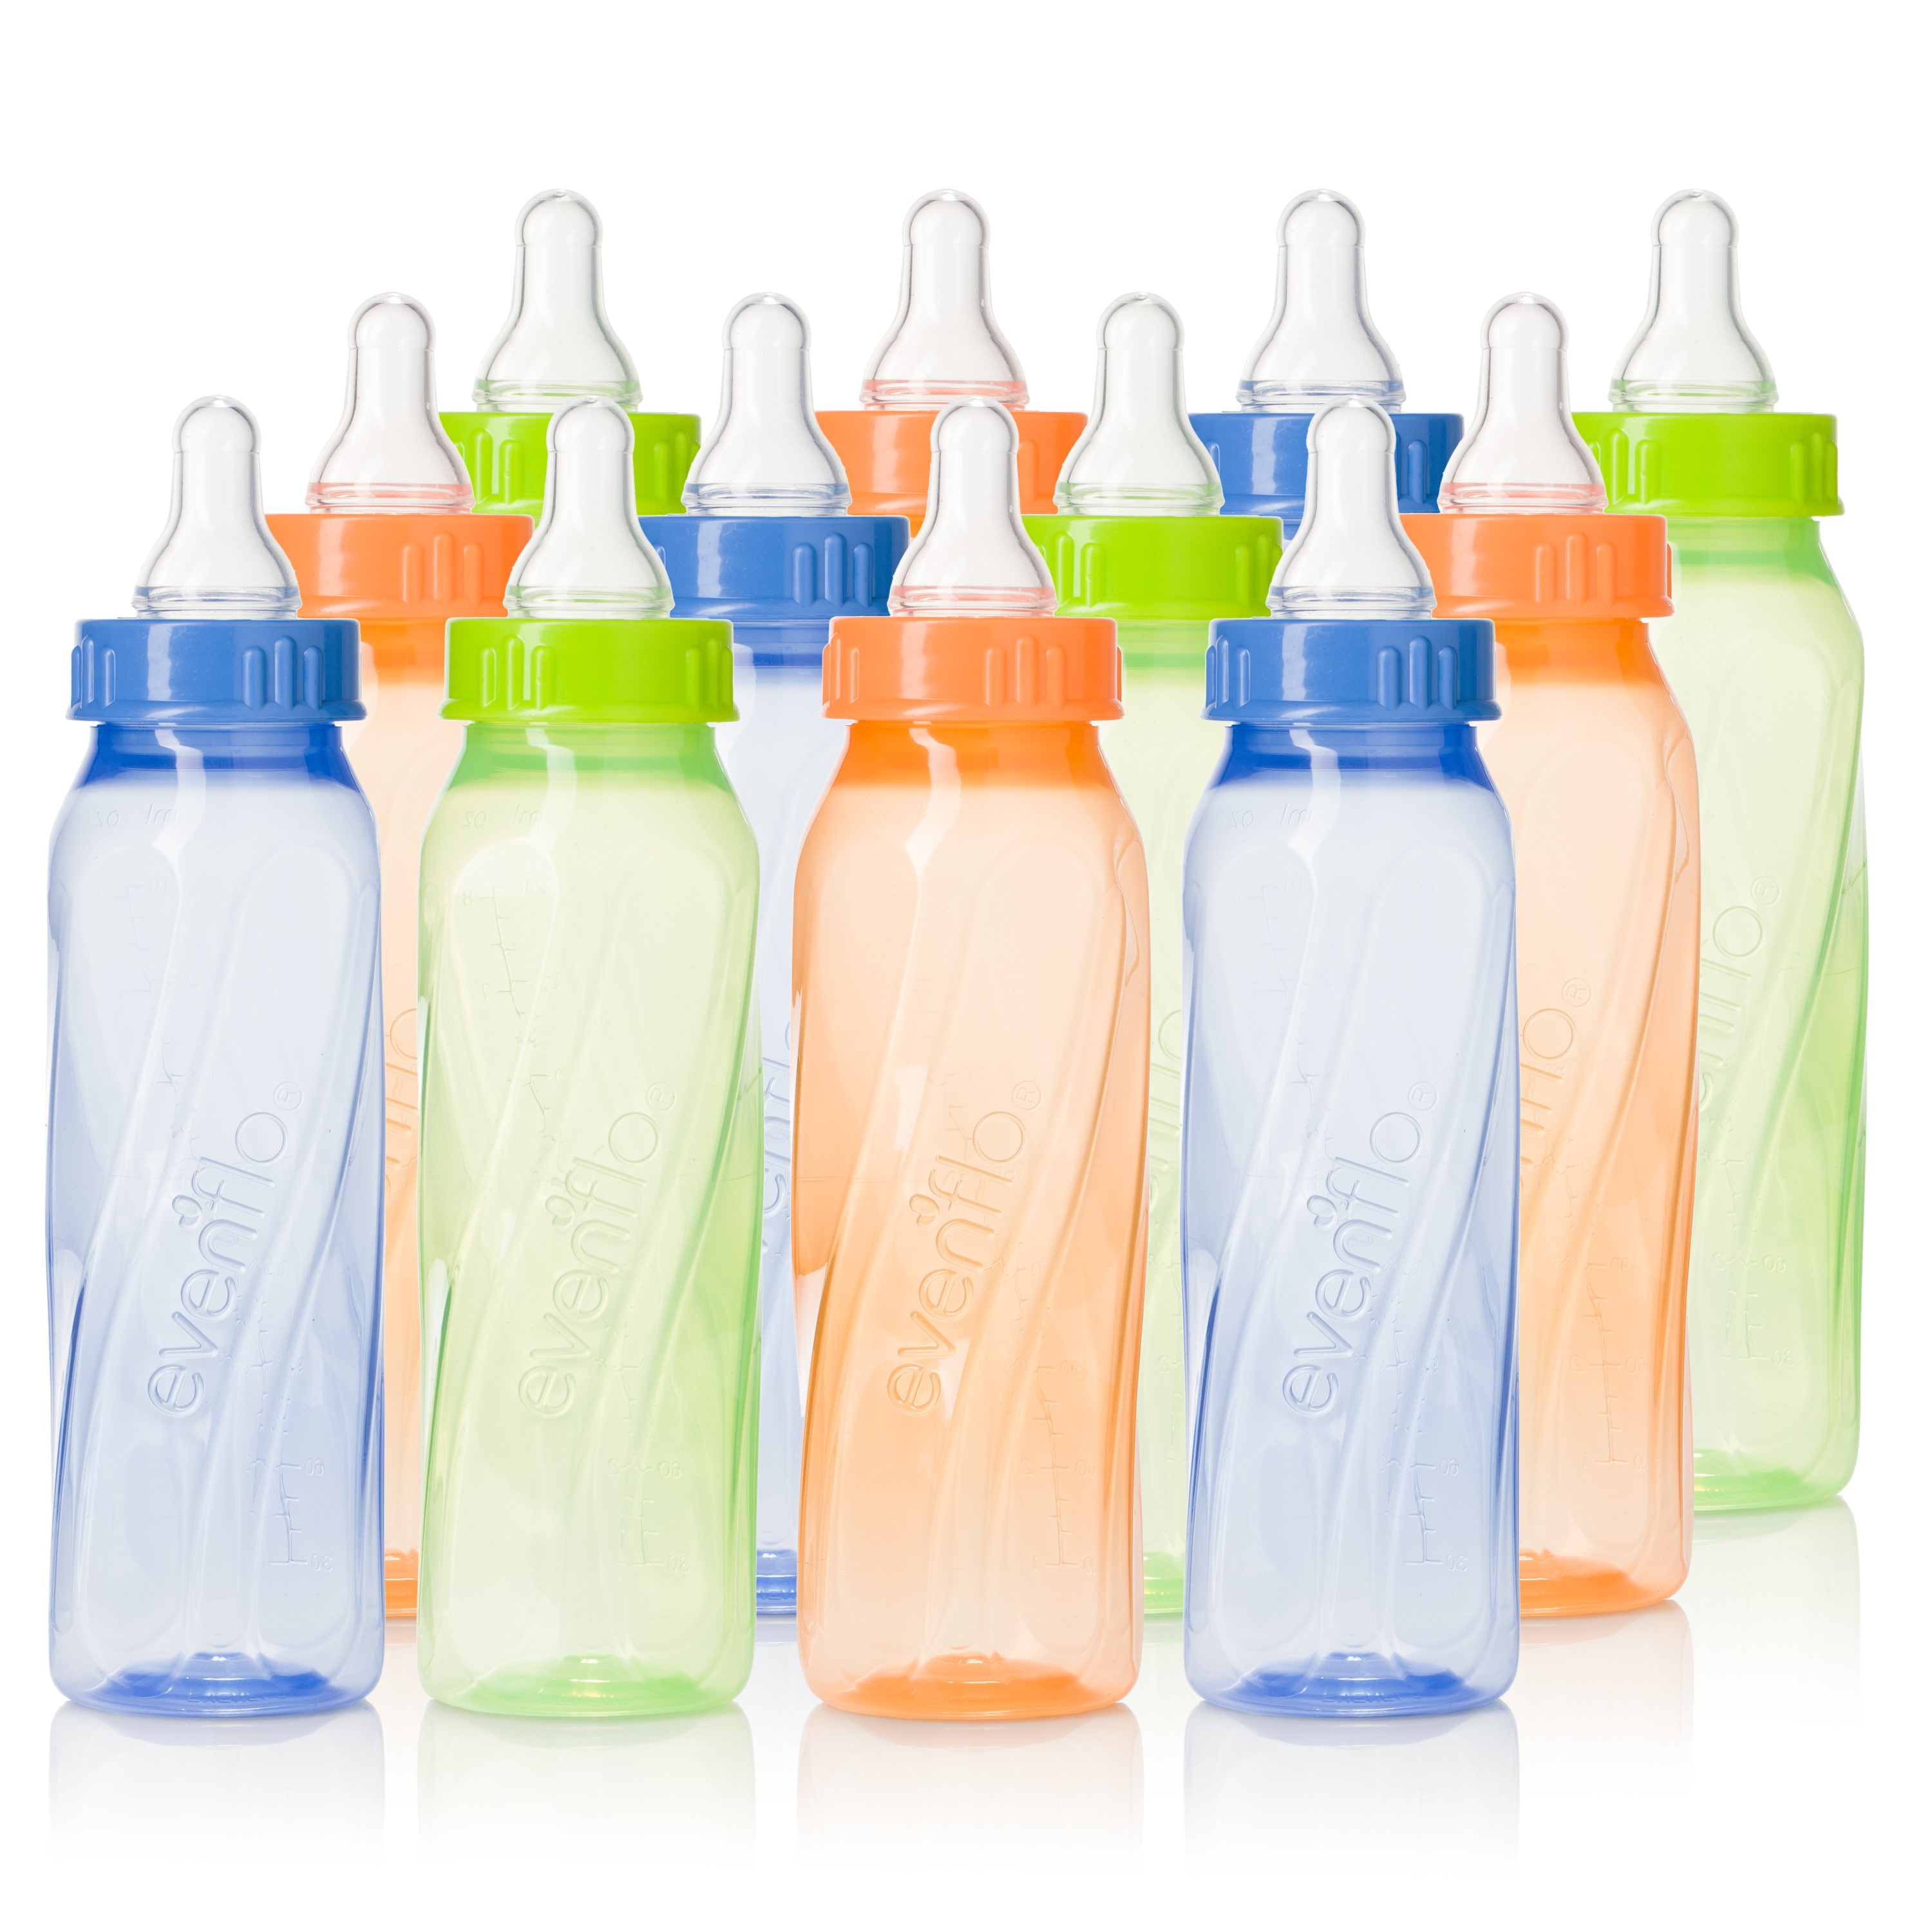 Evenflo Classic Twist BPA-Free Baby Bottle - 8oz, Tinted, 12-Pack